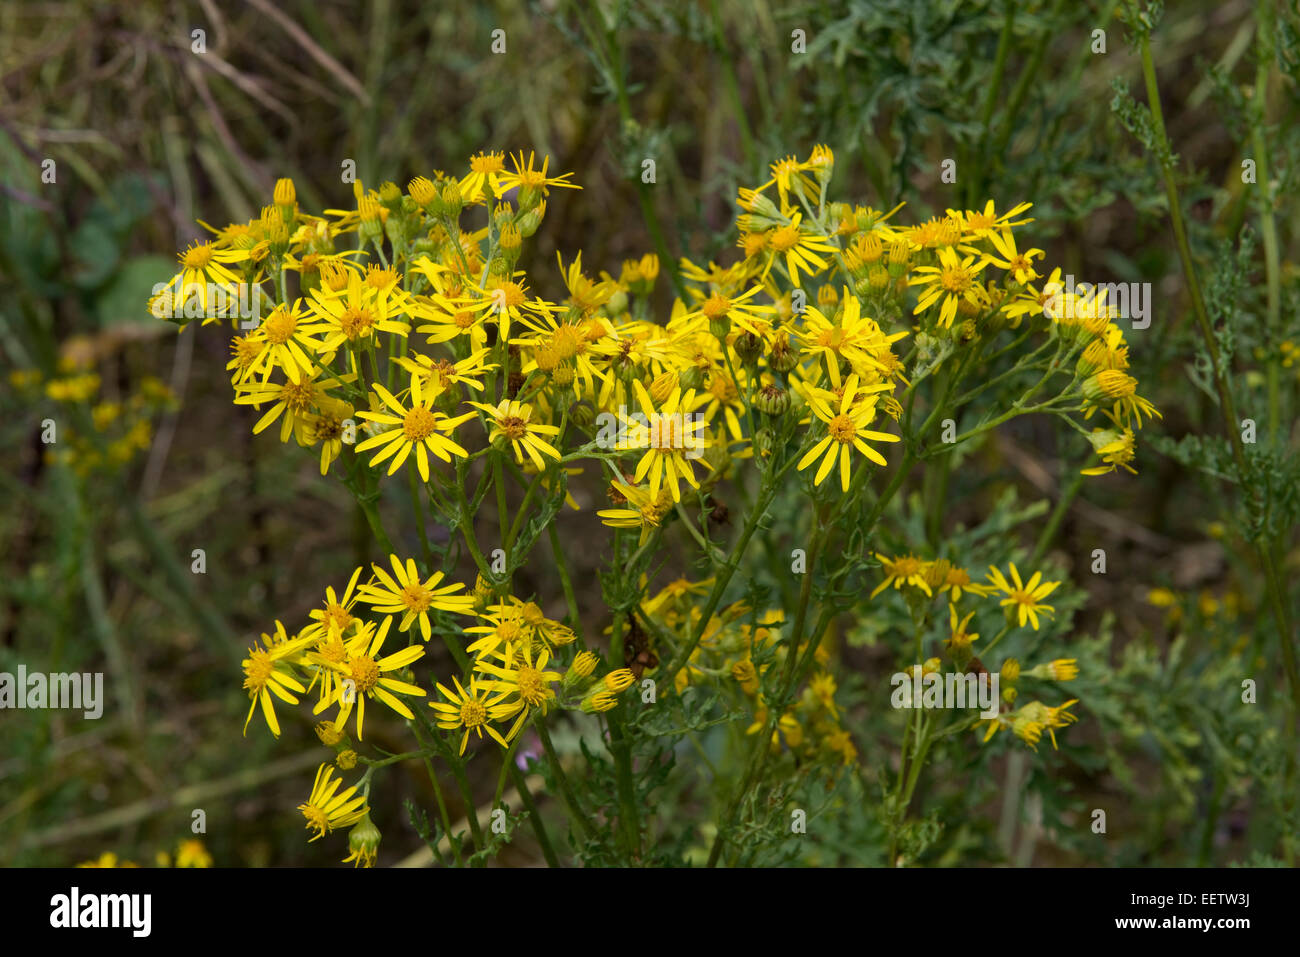 Ragwort Jacobaea Vulgaris Or Senecio Jacobaea Yellow Flowers On